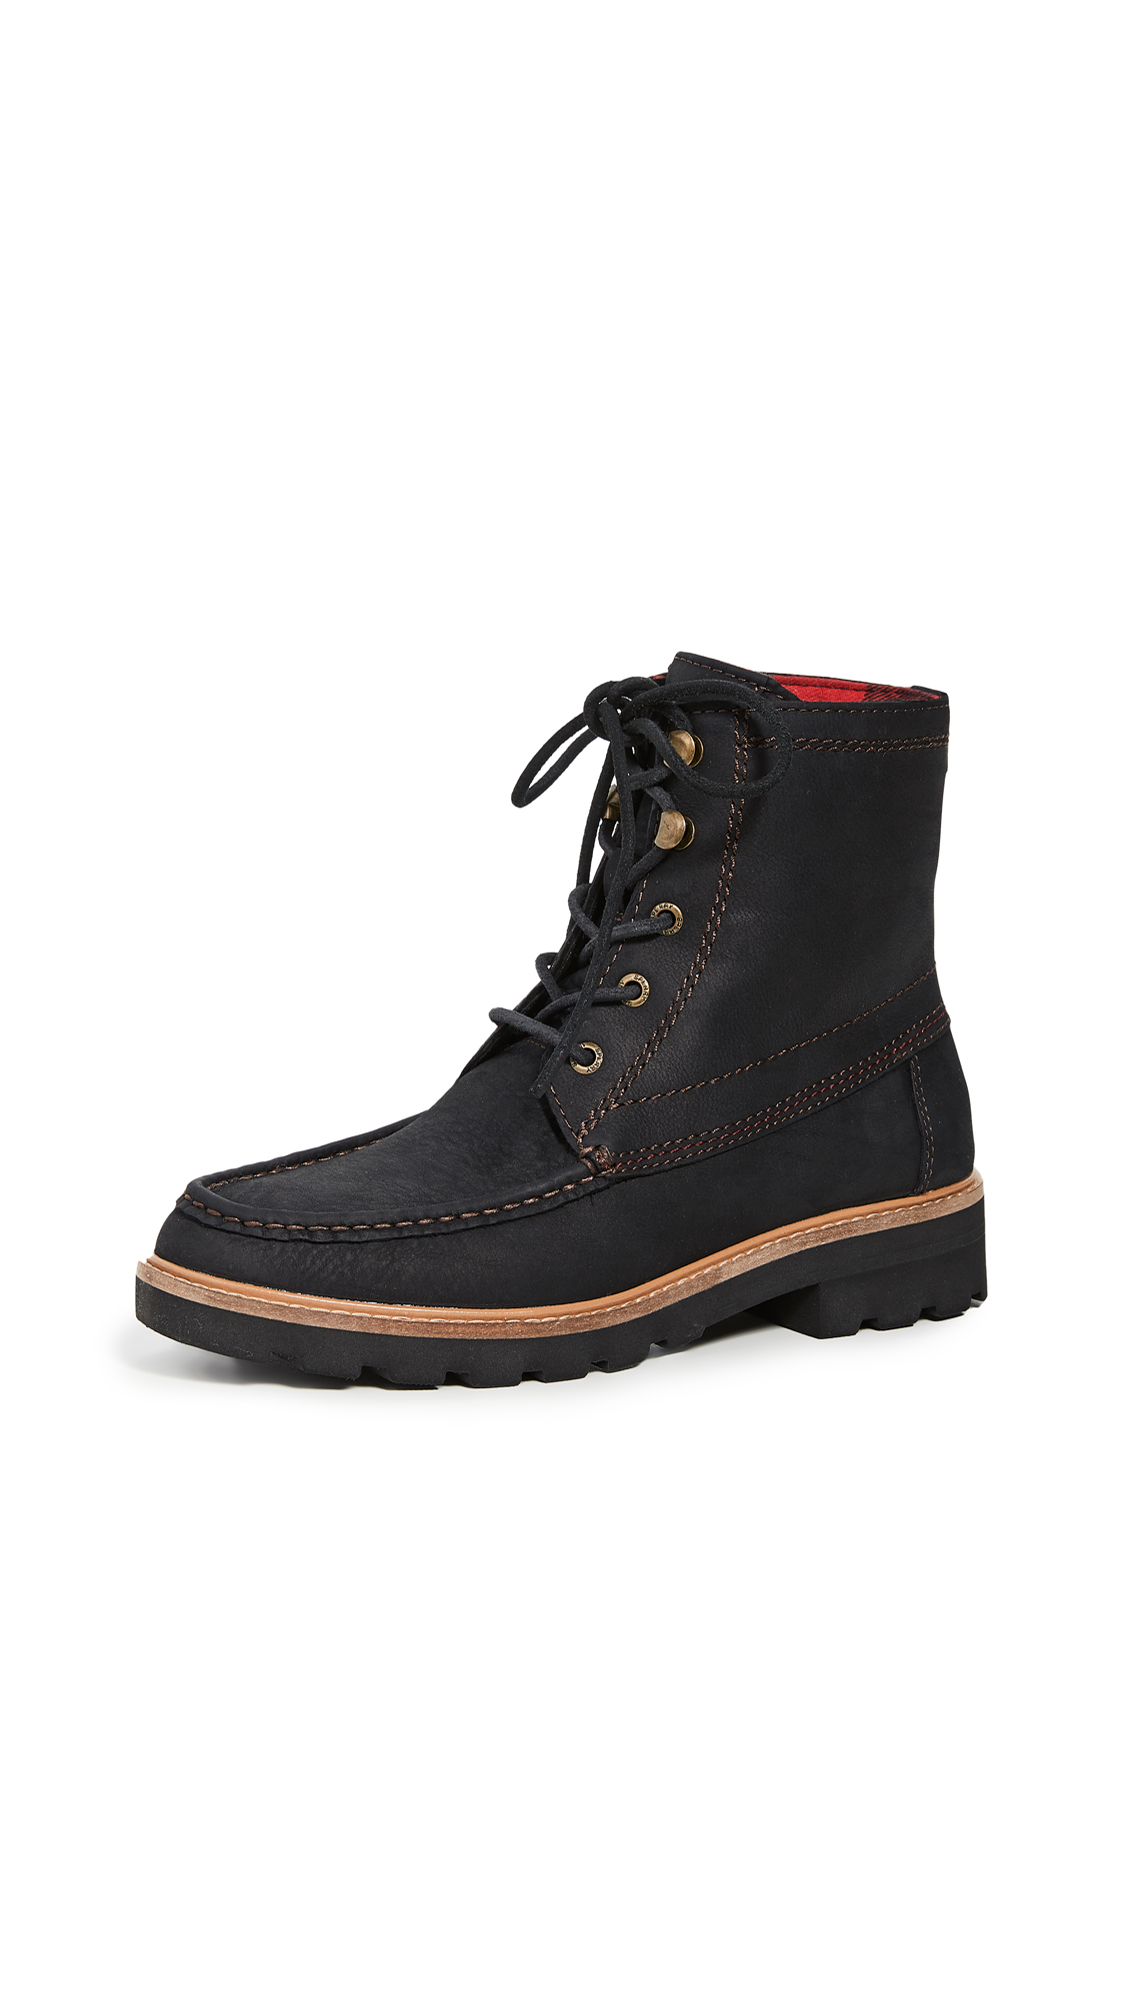 Buy Sperry Authentic Original Lug Boots online, shop Sperry